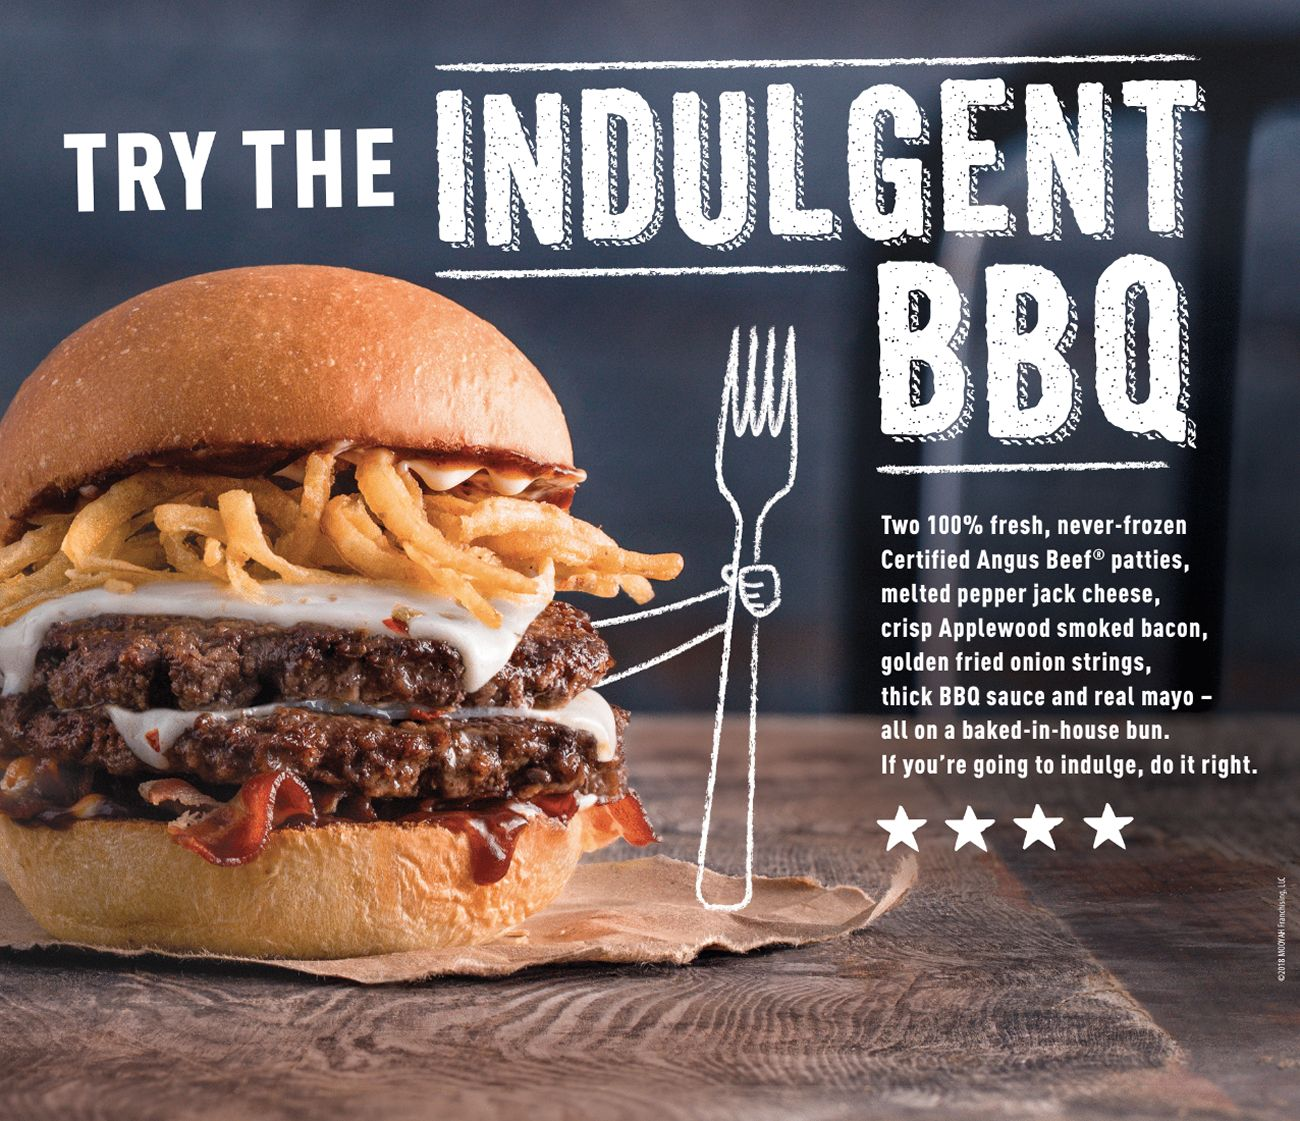 MOOYAH Burgers, Fries & Shakes Launches The Indulgent BBQ